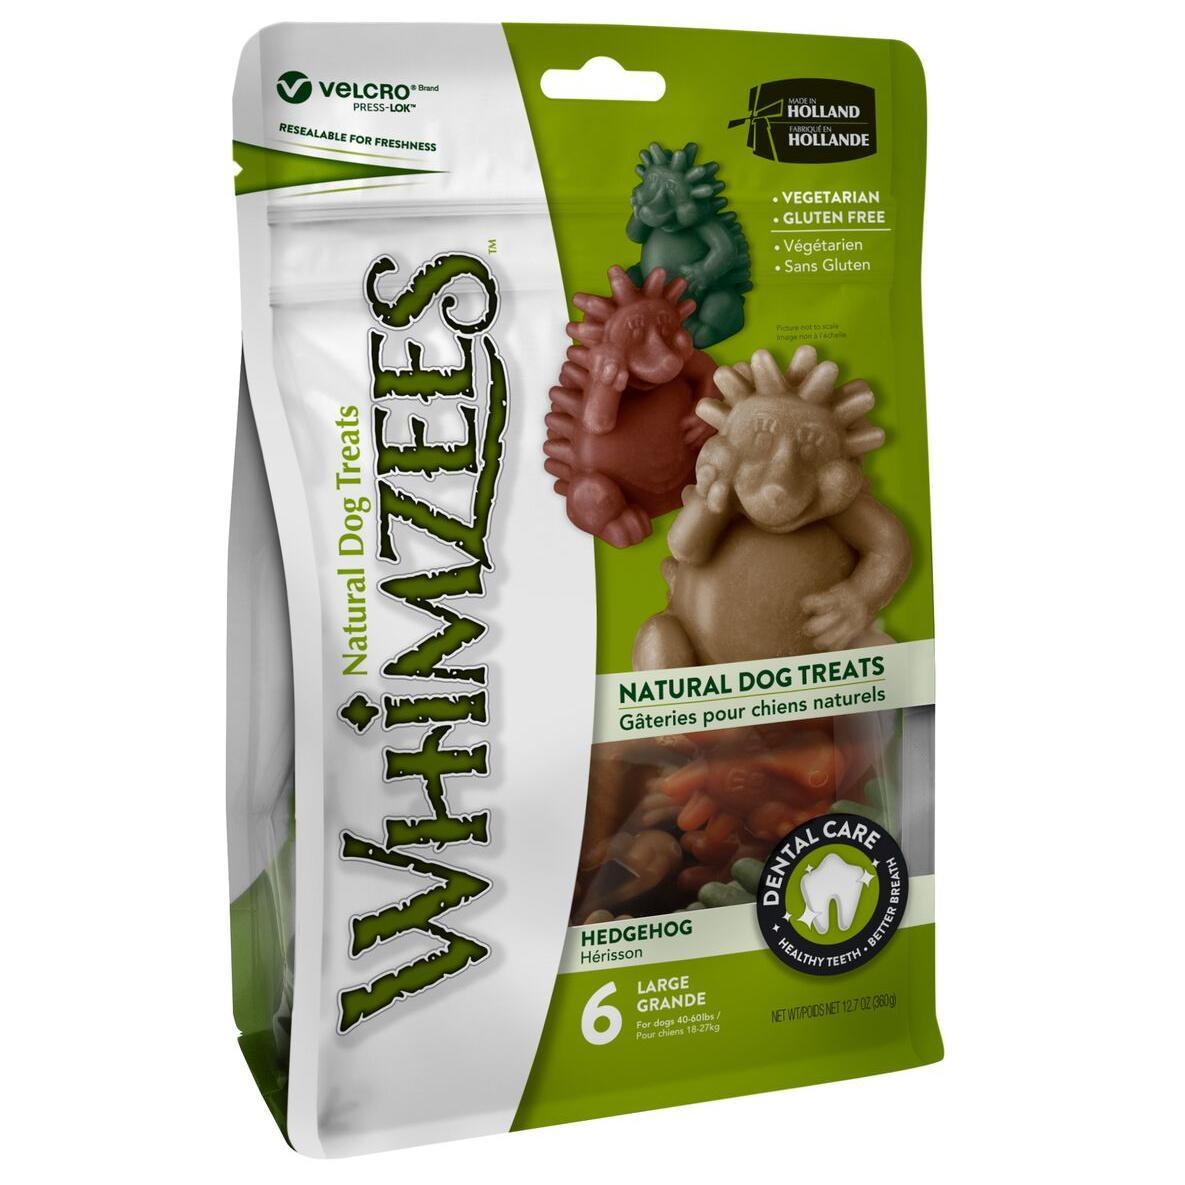 Whimzees Whimzees Hedgehog Large 6 Pack